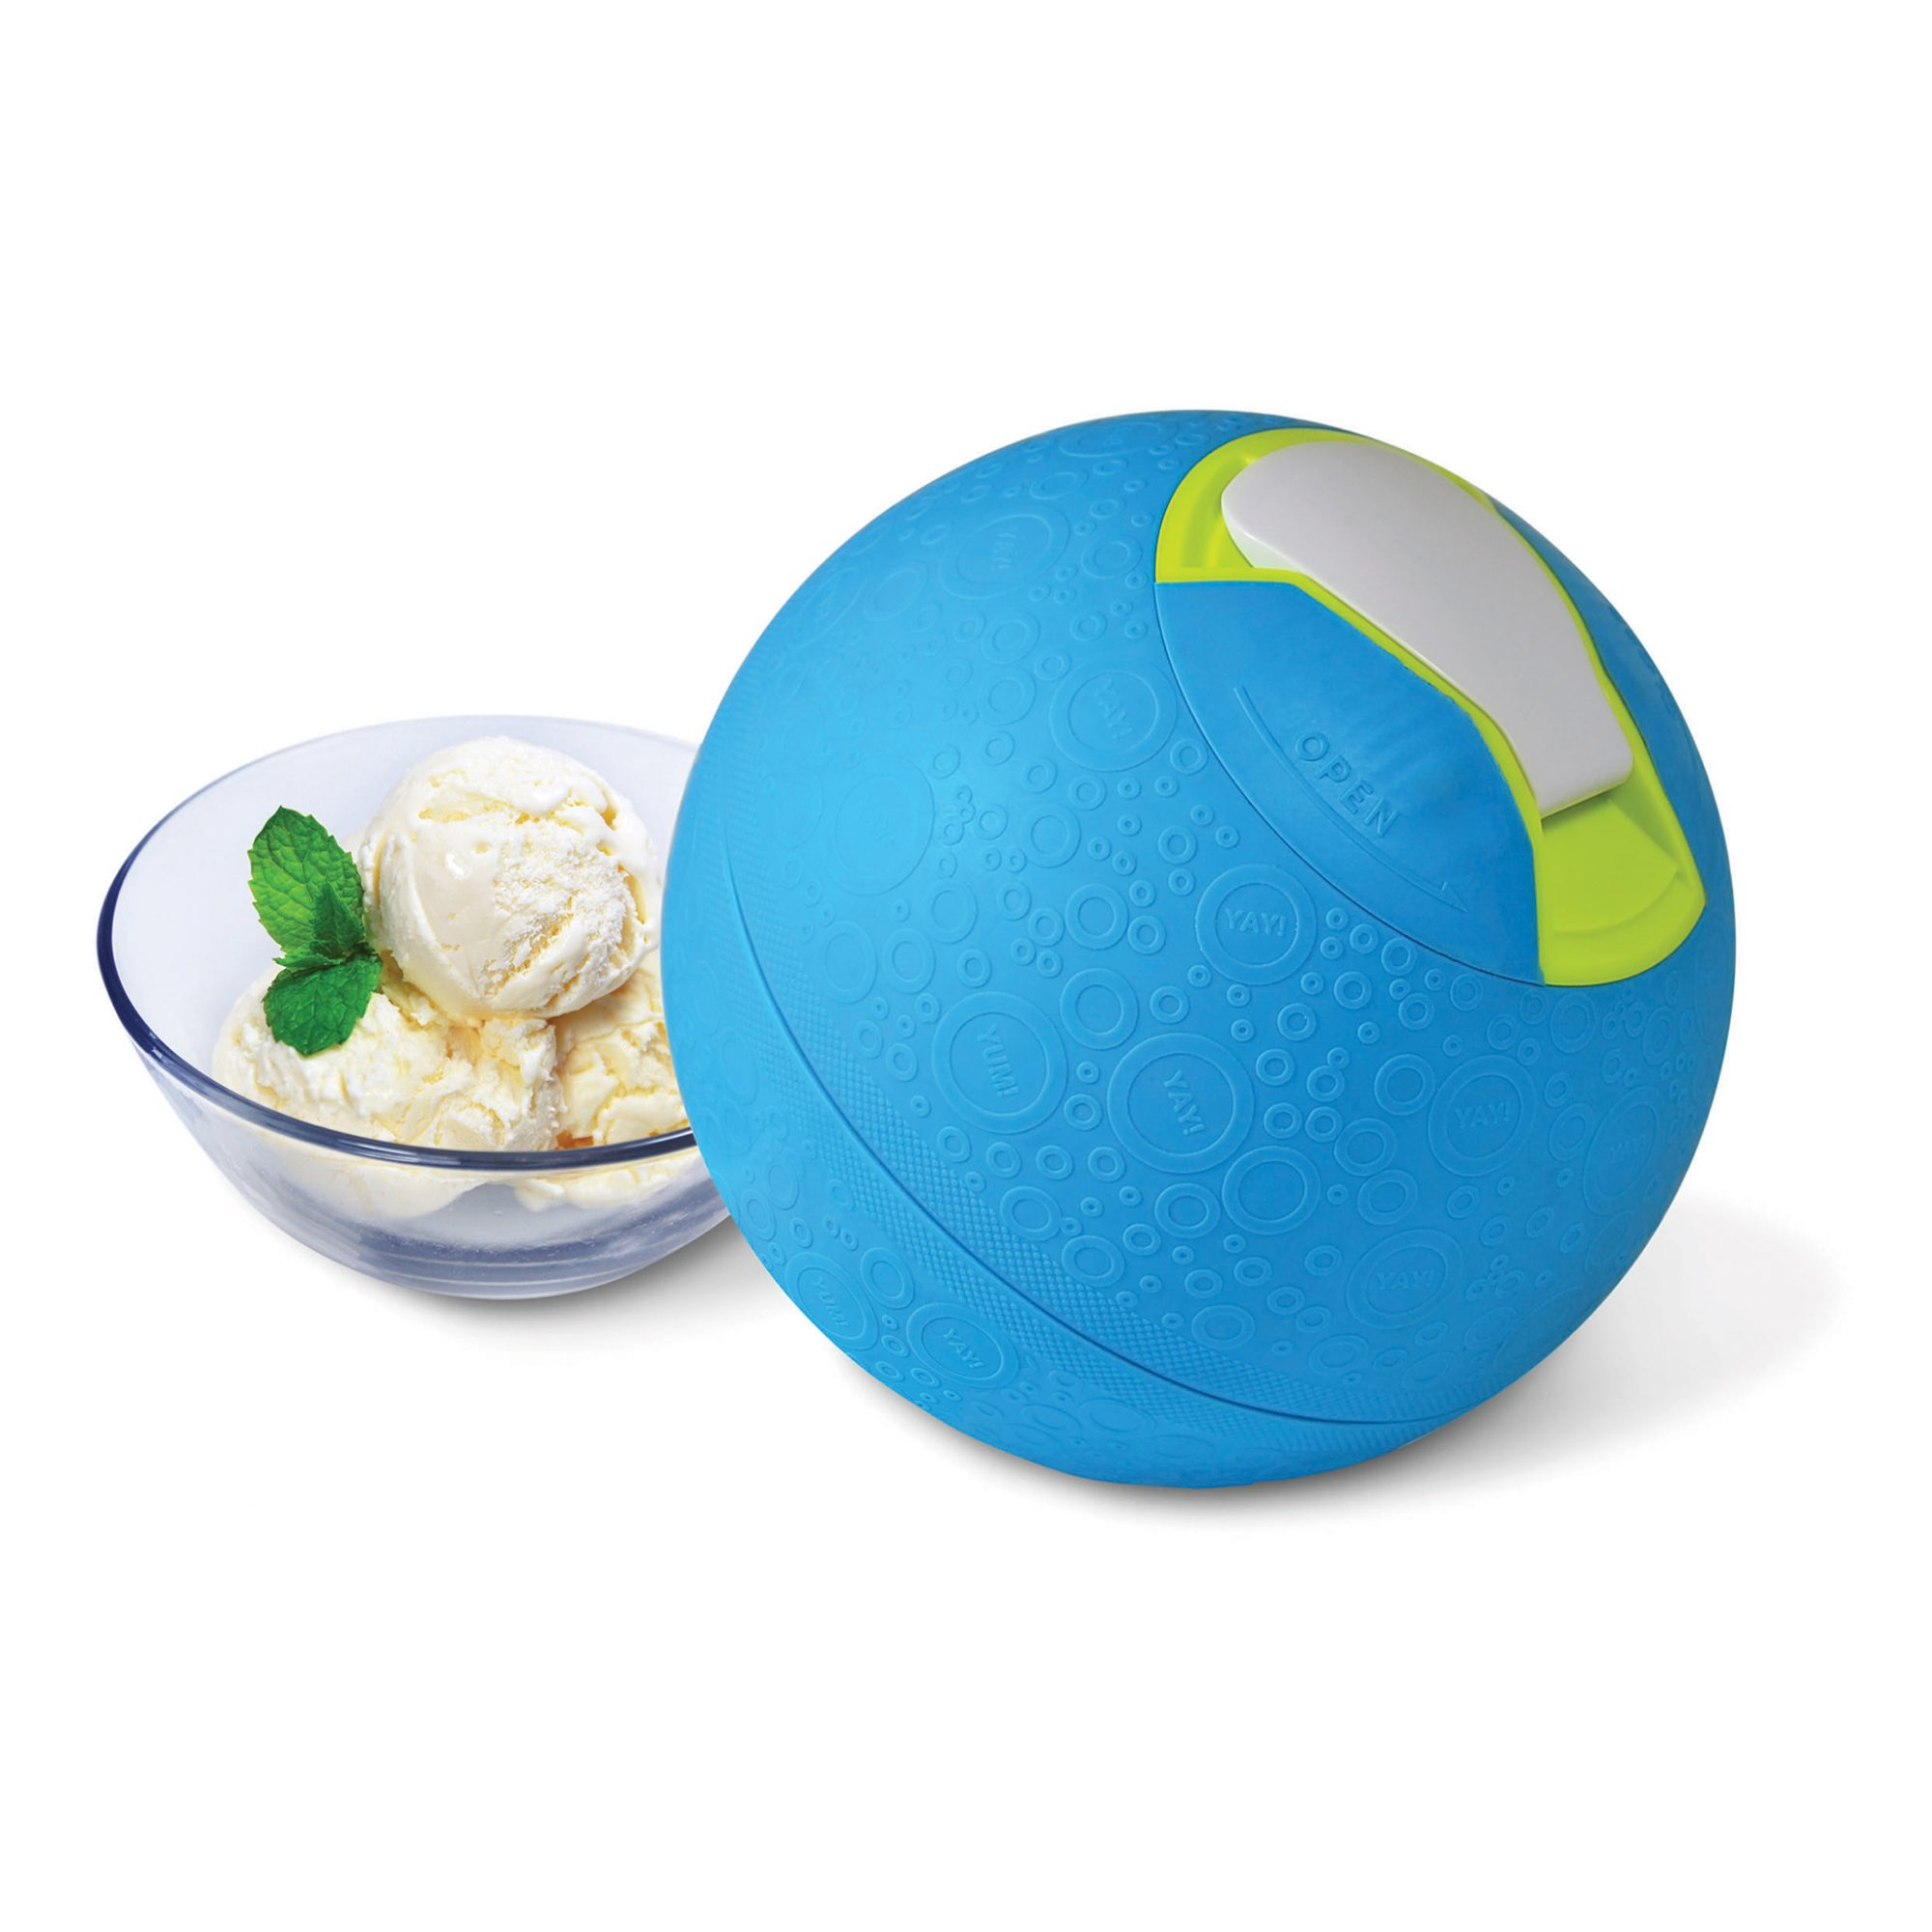 FWX KICKBALL ICE CREAM MAKER HAMMACHER SCHLEMMER